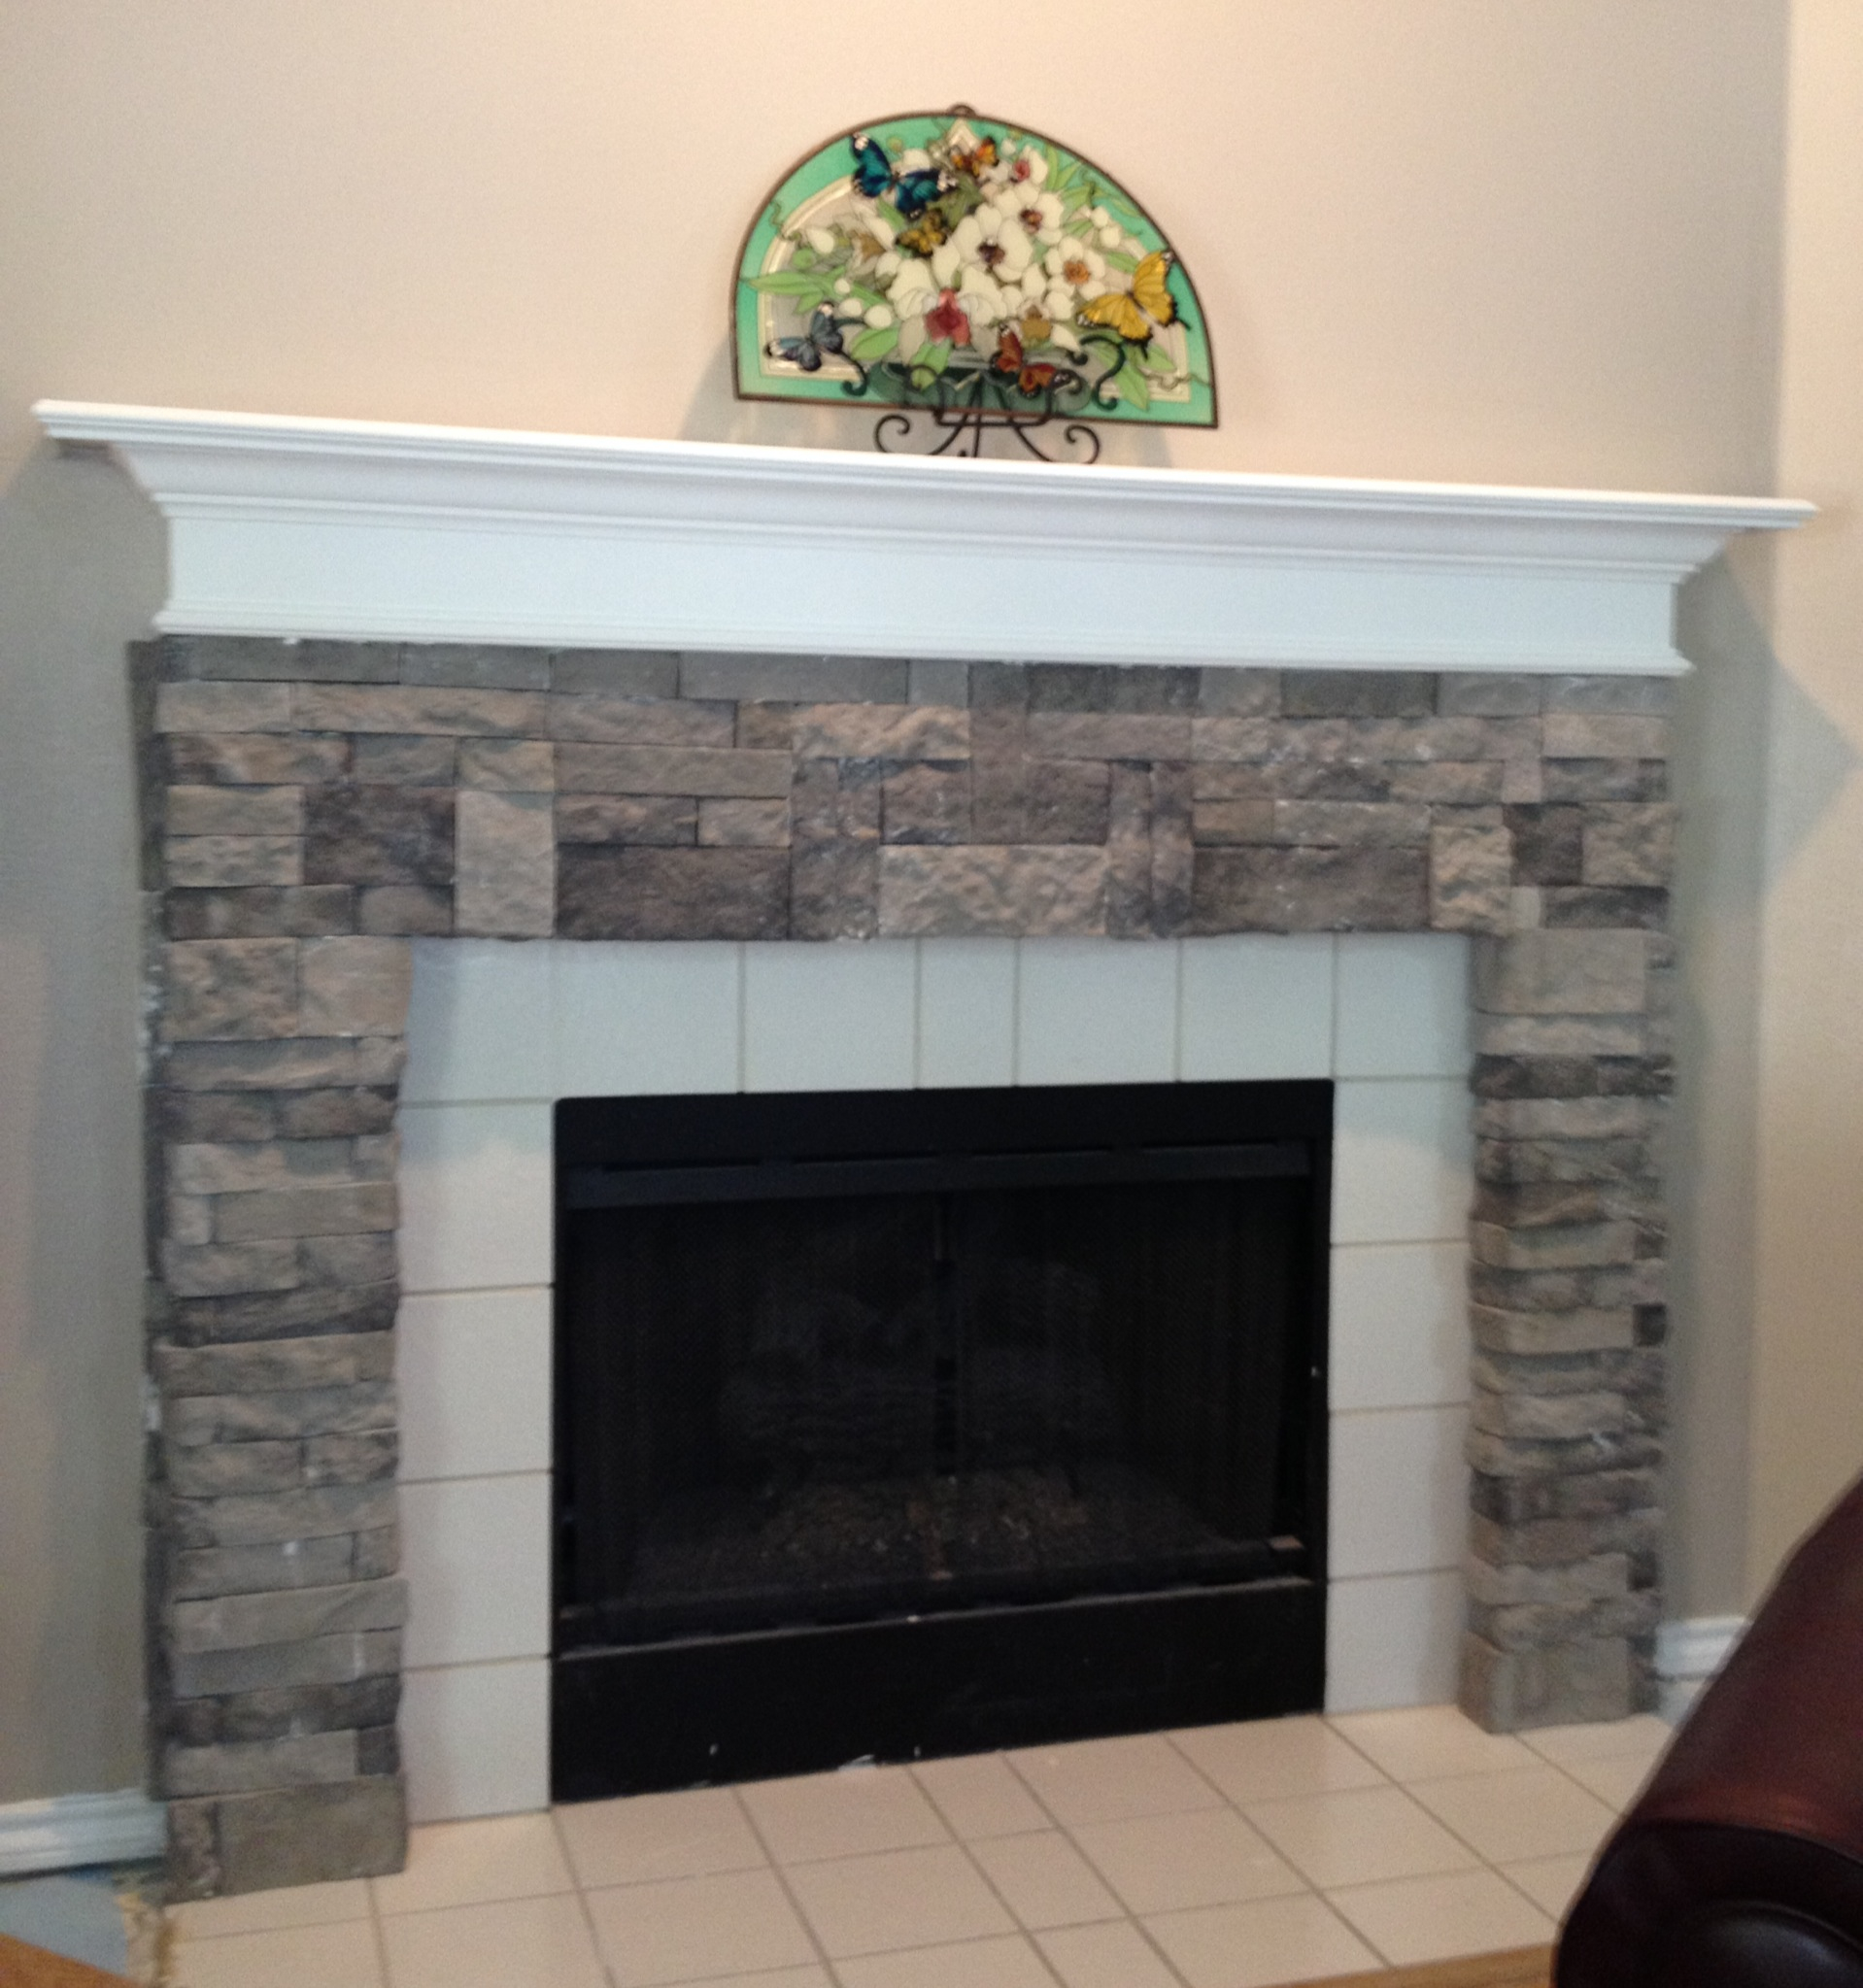 Lowes Fireplace Mantel | Home Depot Fireplace Mantel | Fireplace Mantel Lowes